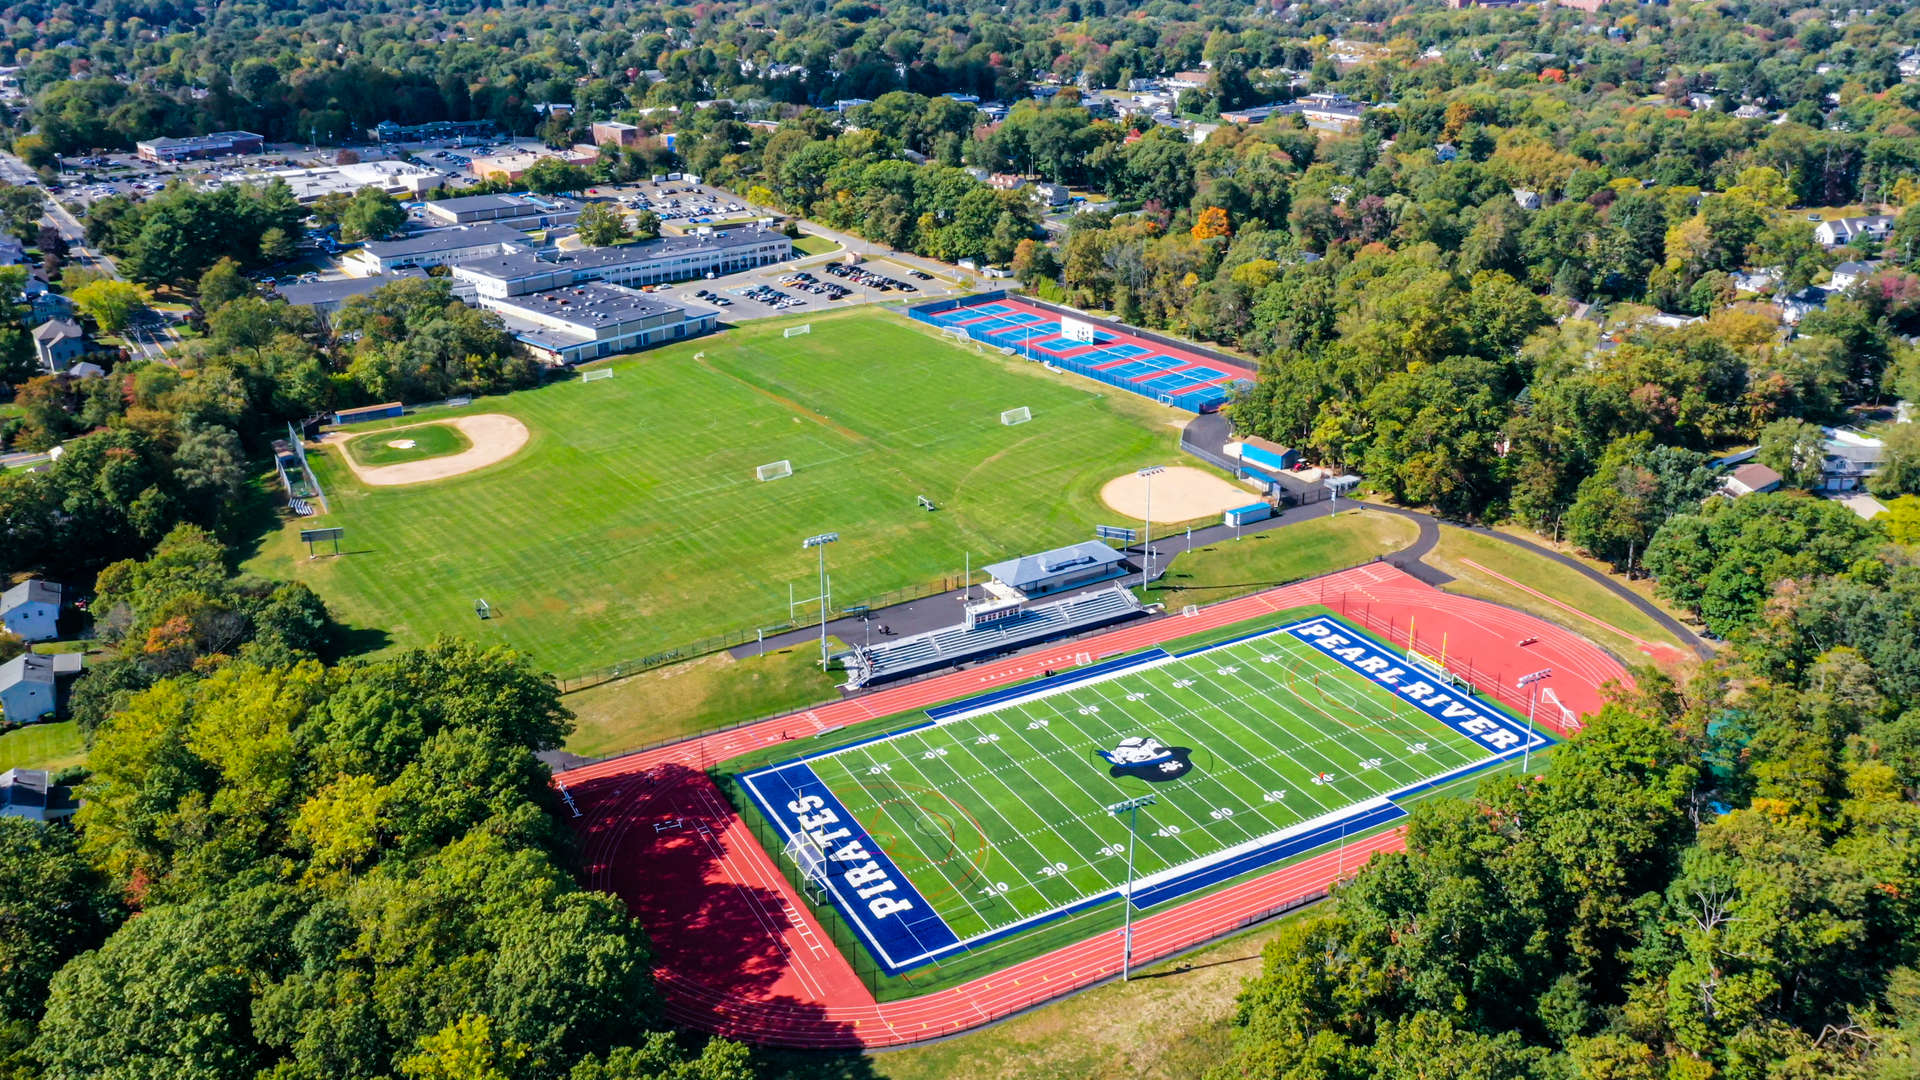 Second PRSD HS Athletic Fields and Campus - Drone Shot